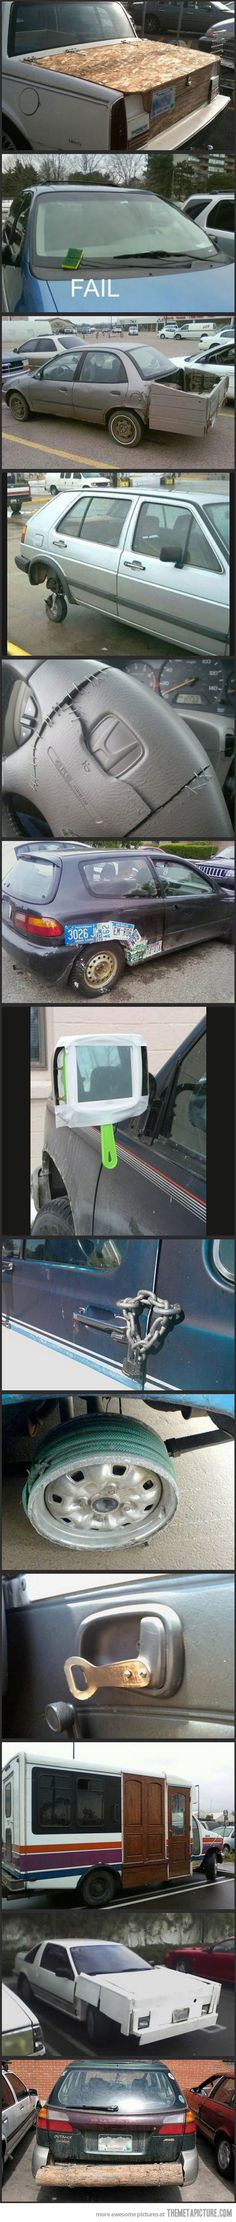 Redneck car repair...lol. And for those who would understand, there's a make-up mirror for you :)